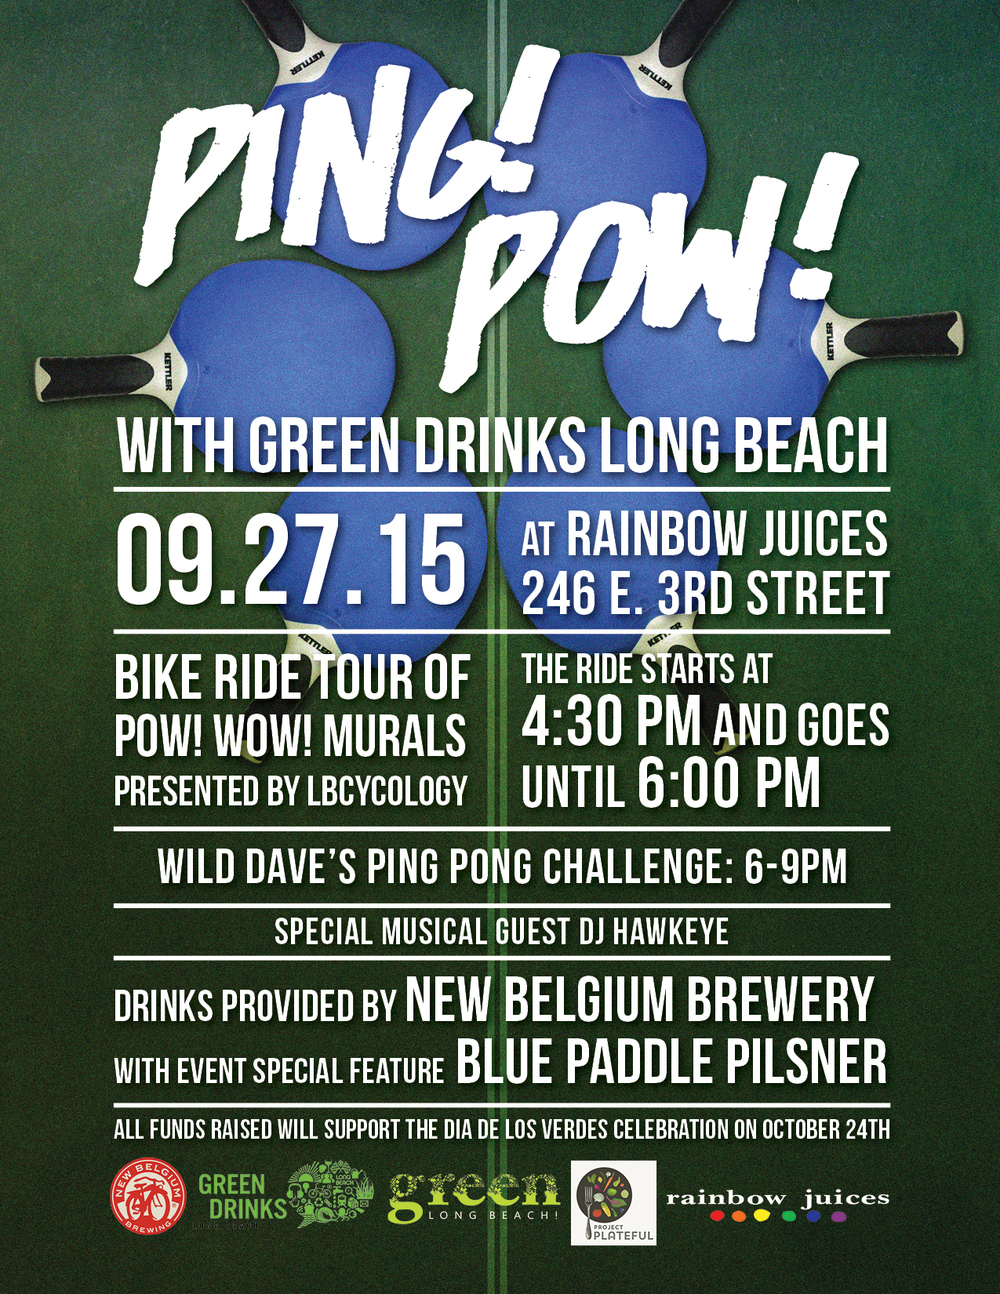 Ping! Pow! Flyer